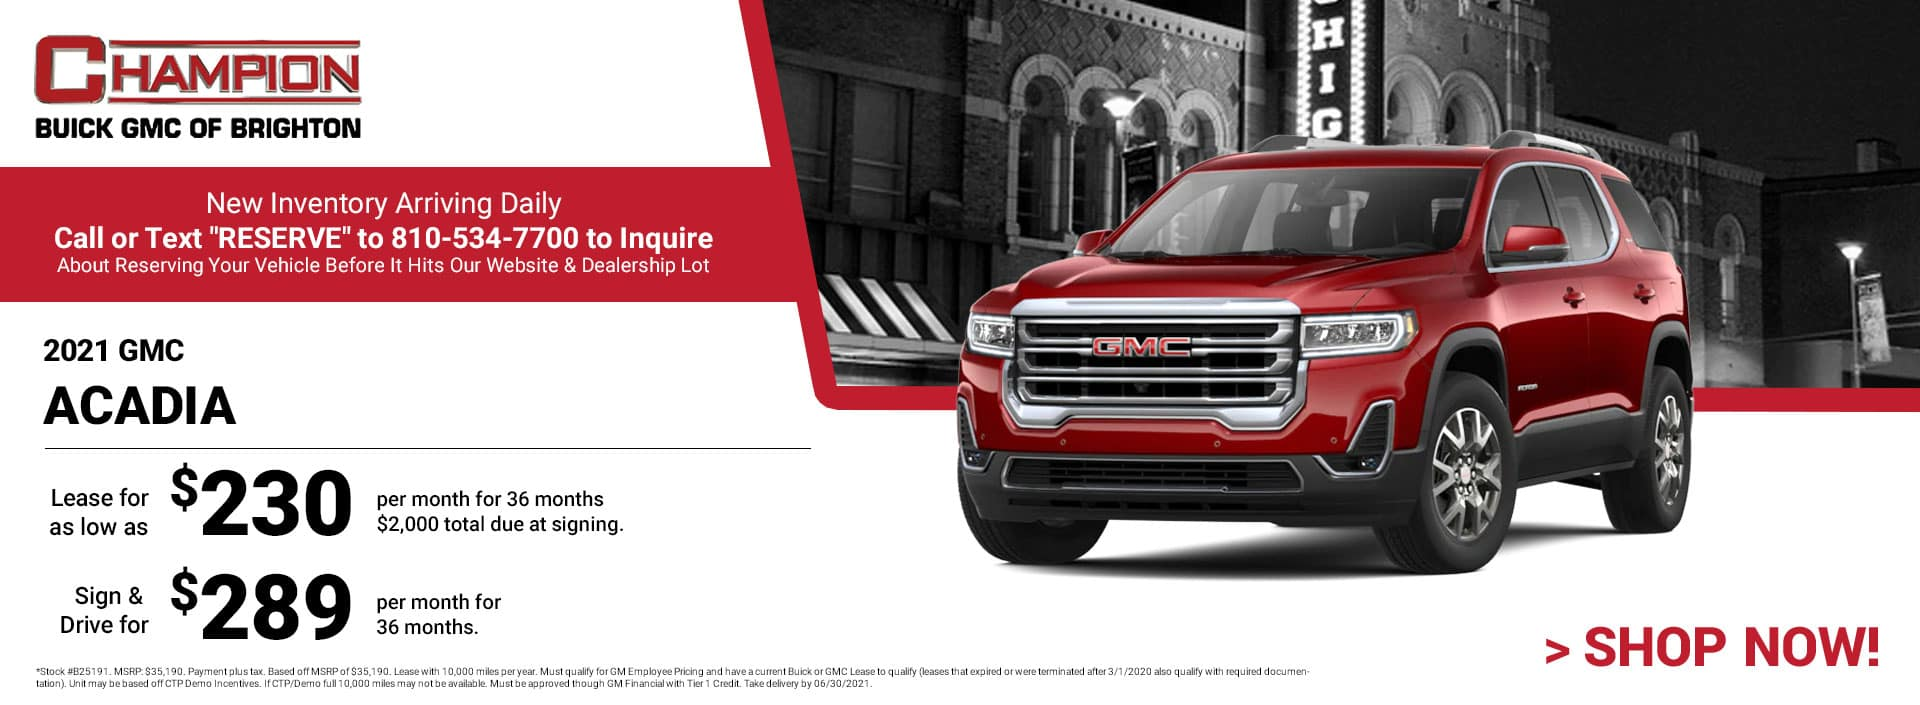 2021 GMC Acadia - Lease for just: $230 per month for 36 months $2,000 total due at signing. Sign & Drive for $289 per month for 36 months.